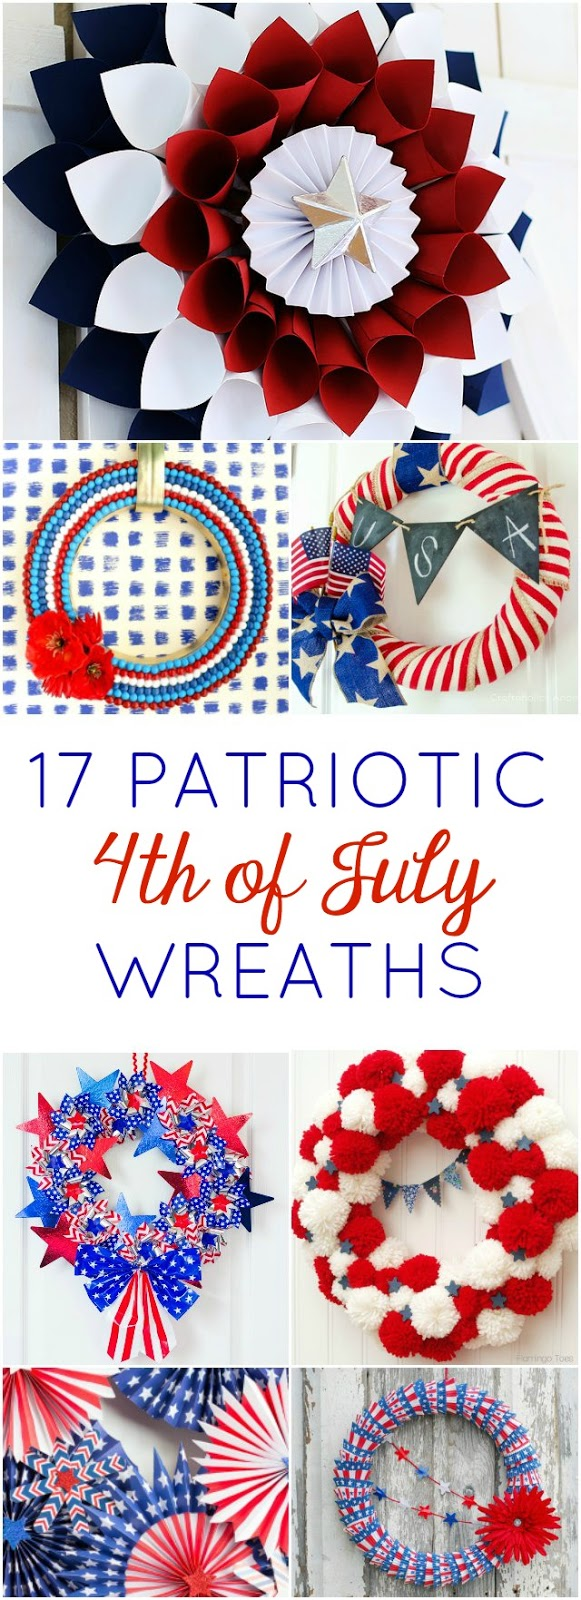 These 17 DIY patriotic wreaths will make your front door the star of the neighborhood this 4th of July!